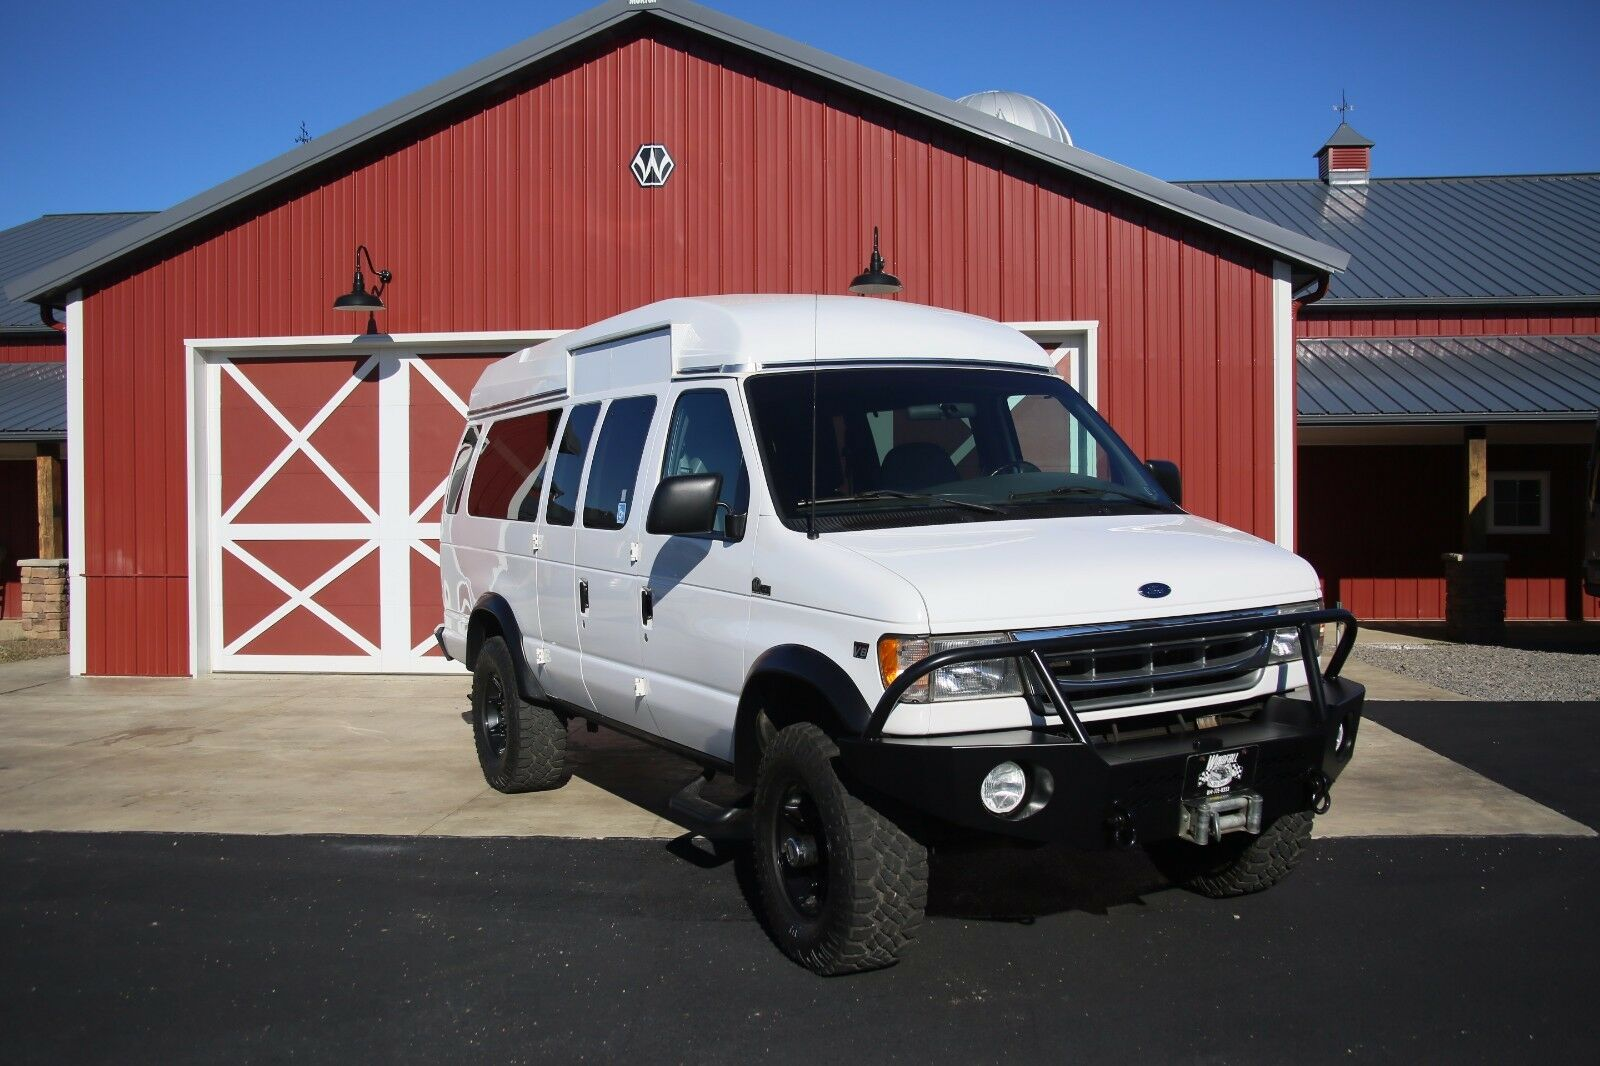 Used Ford Cars Trucks Suvs Vans For Sale: 2001 Ford E350 Quigley 4x4 Conversion With 7.3 Diesel And